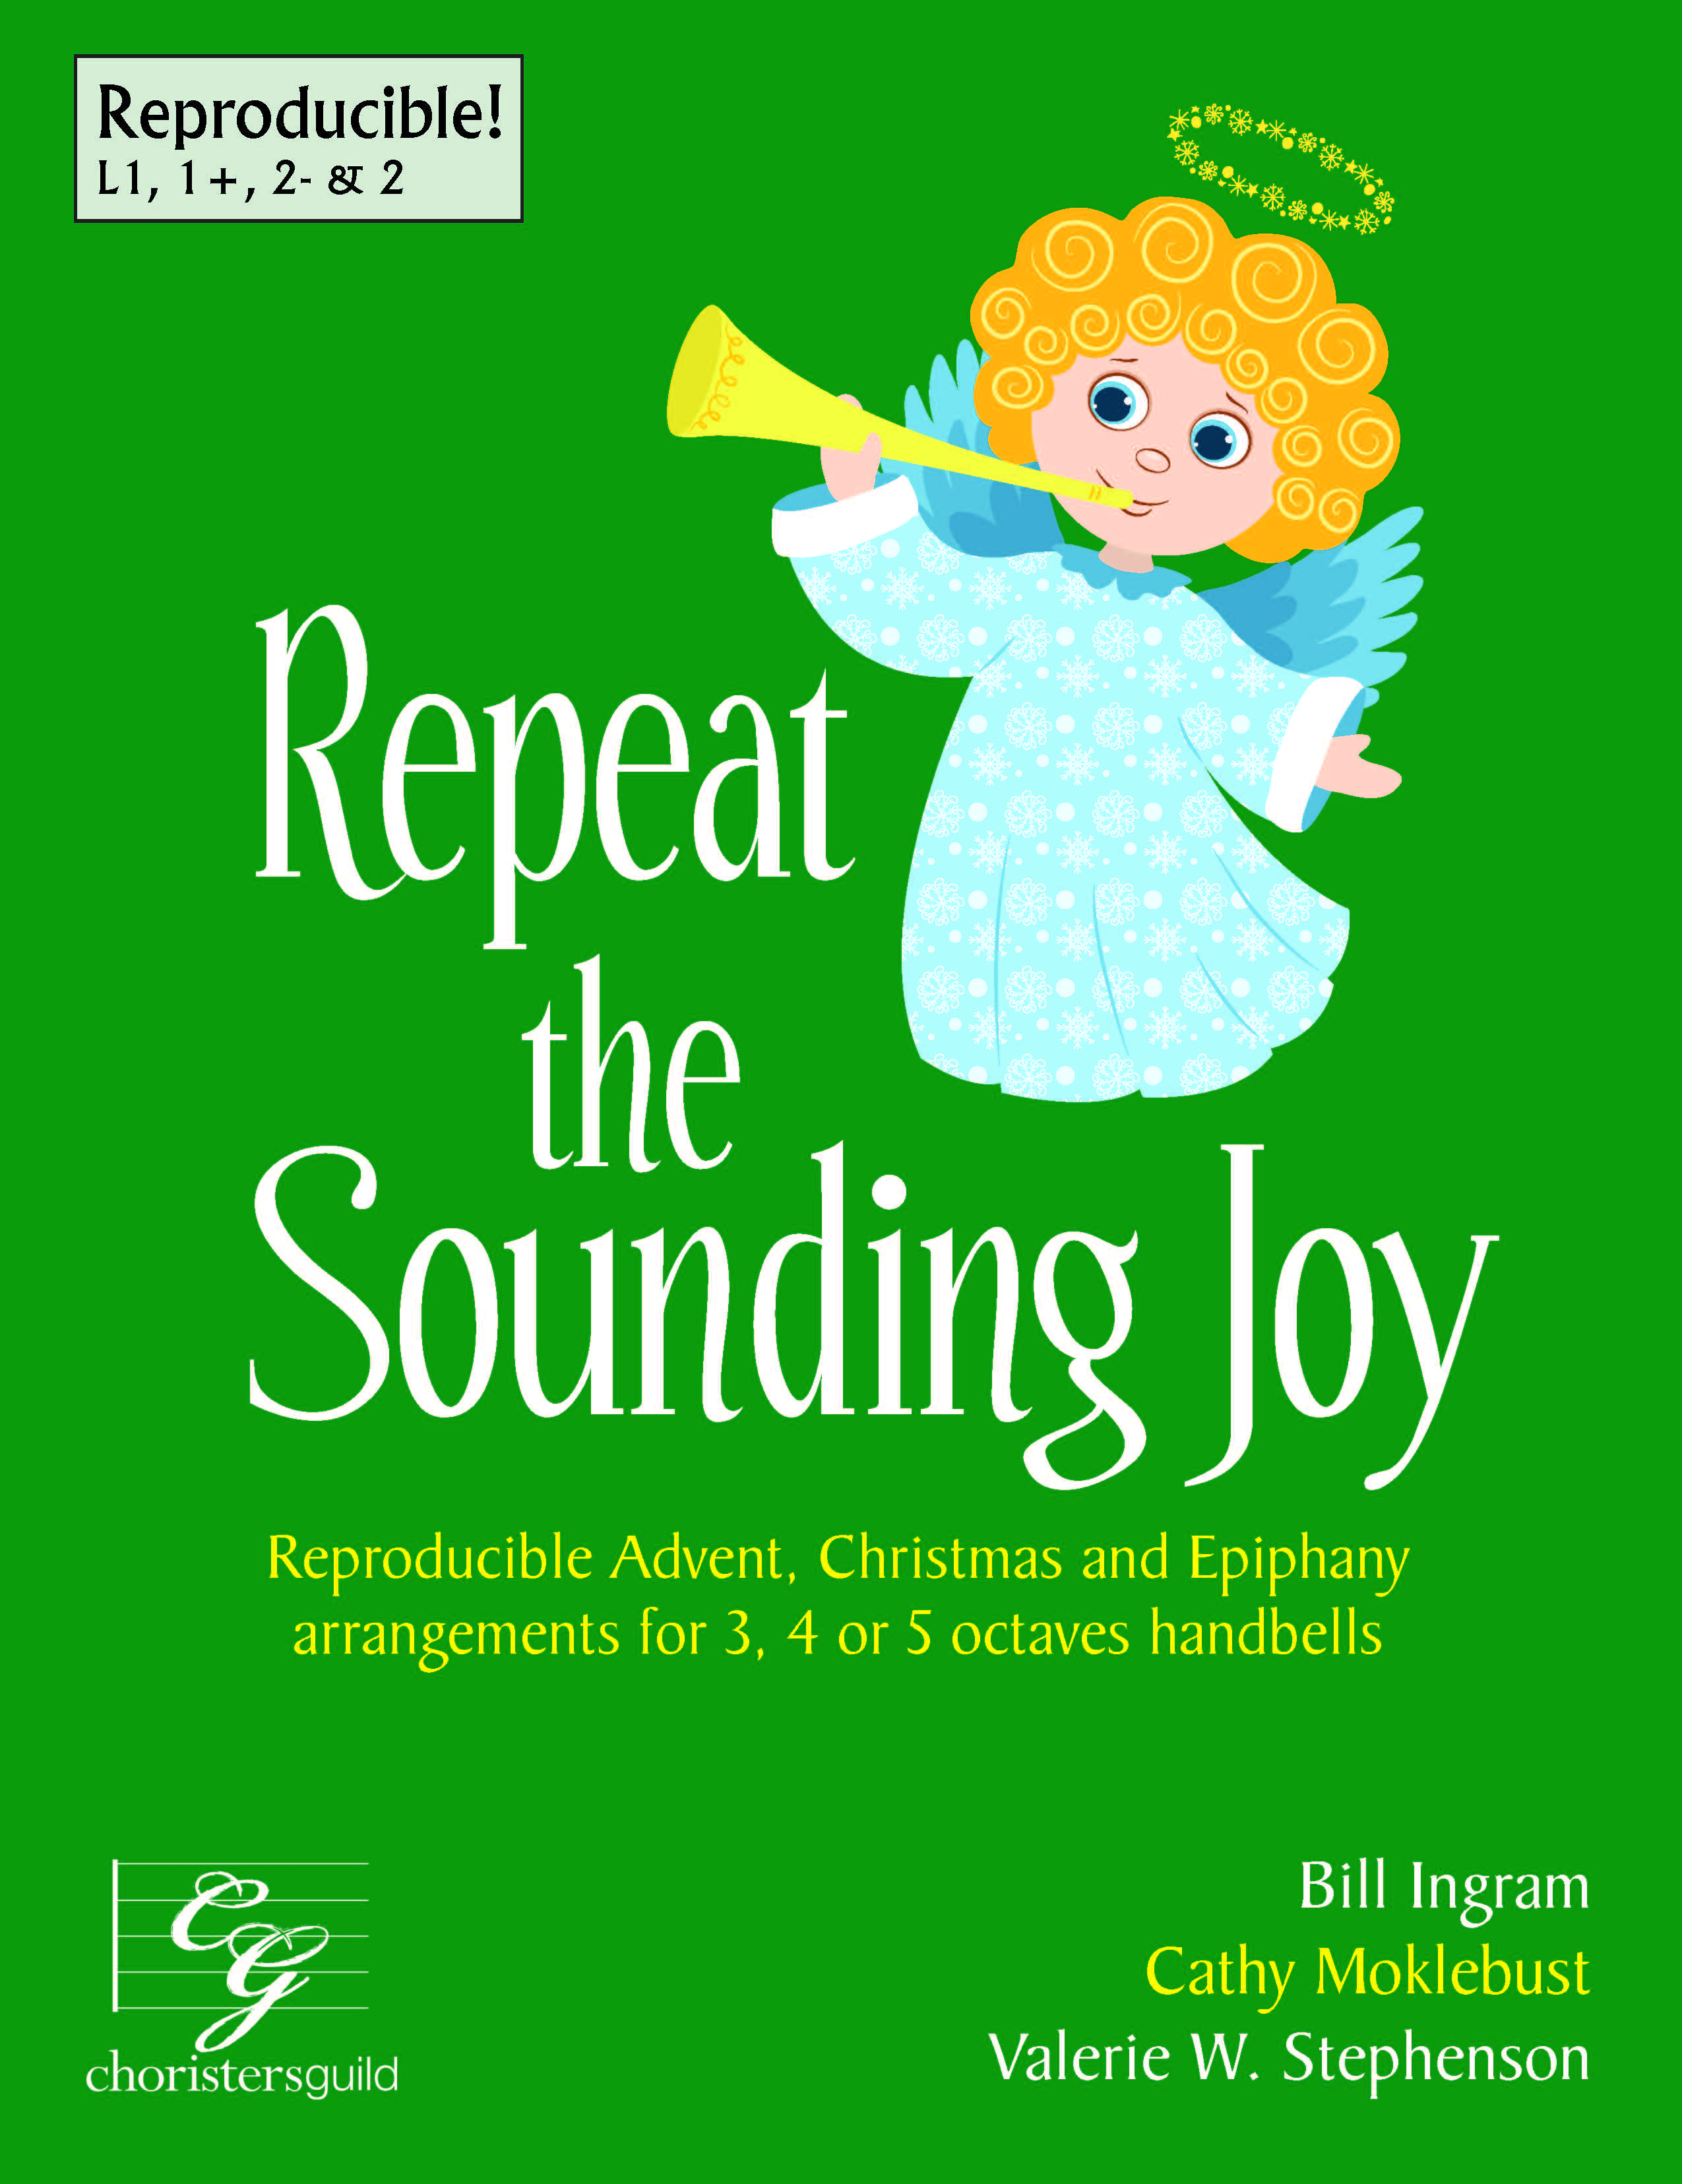 Repeat the Sounding Joy - 3-5 octaves